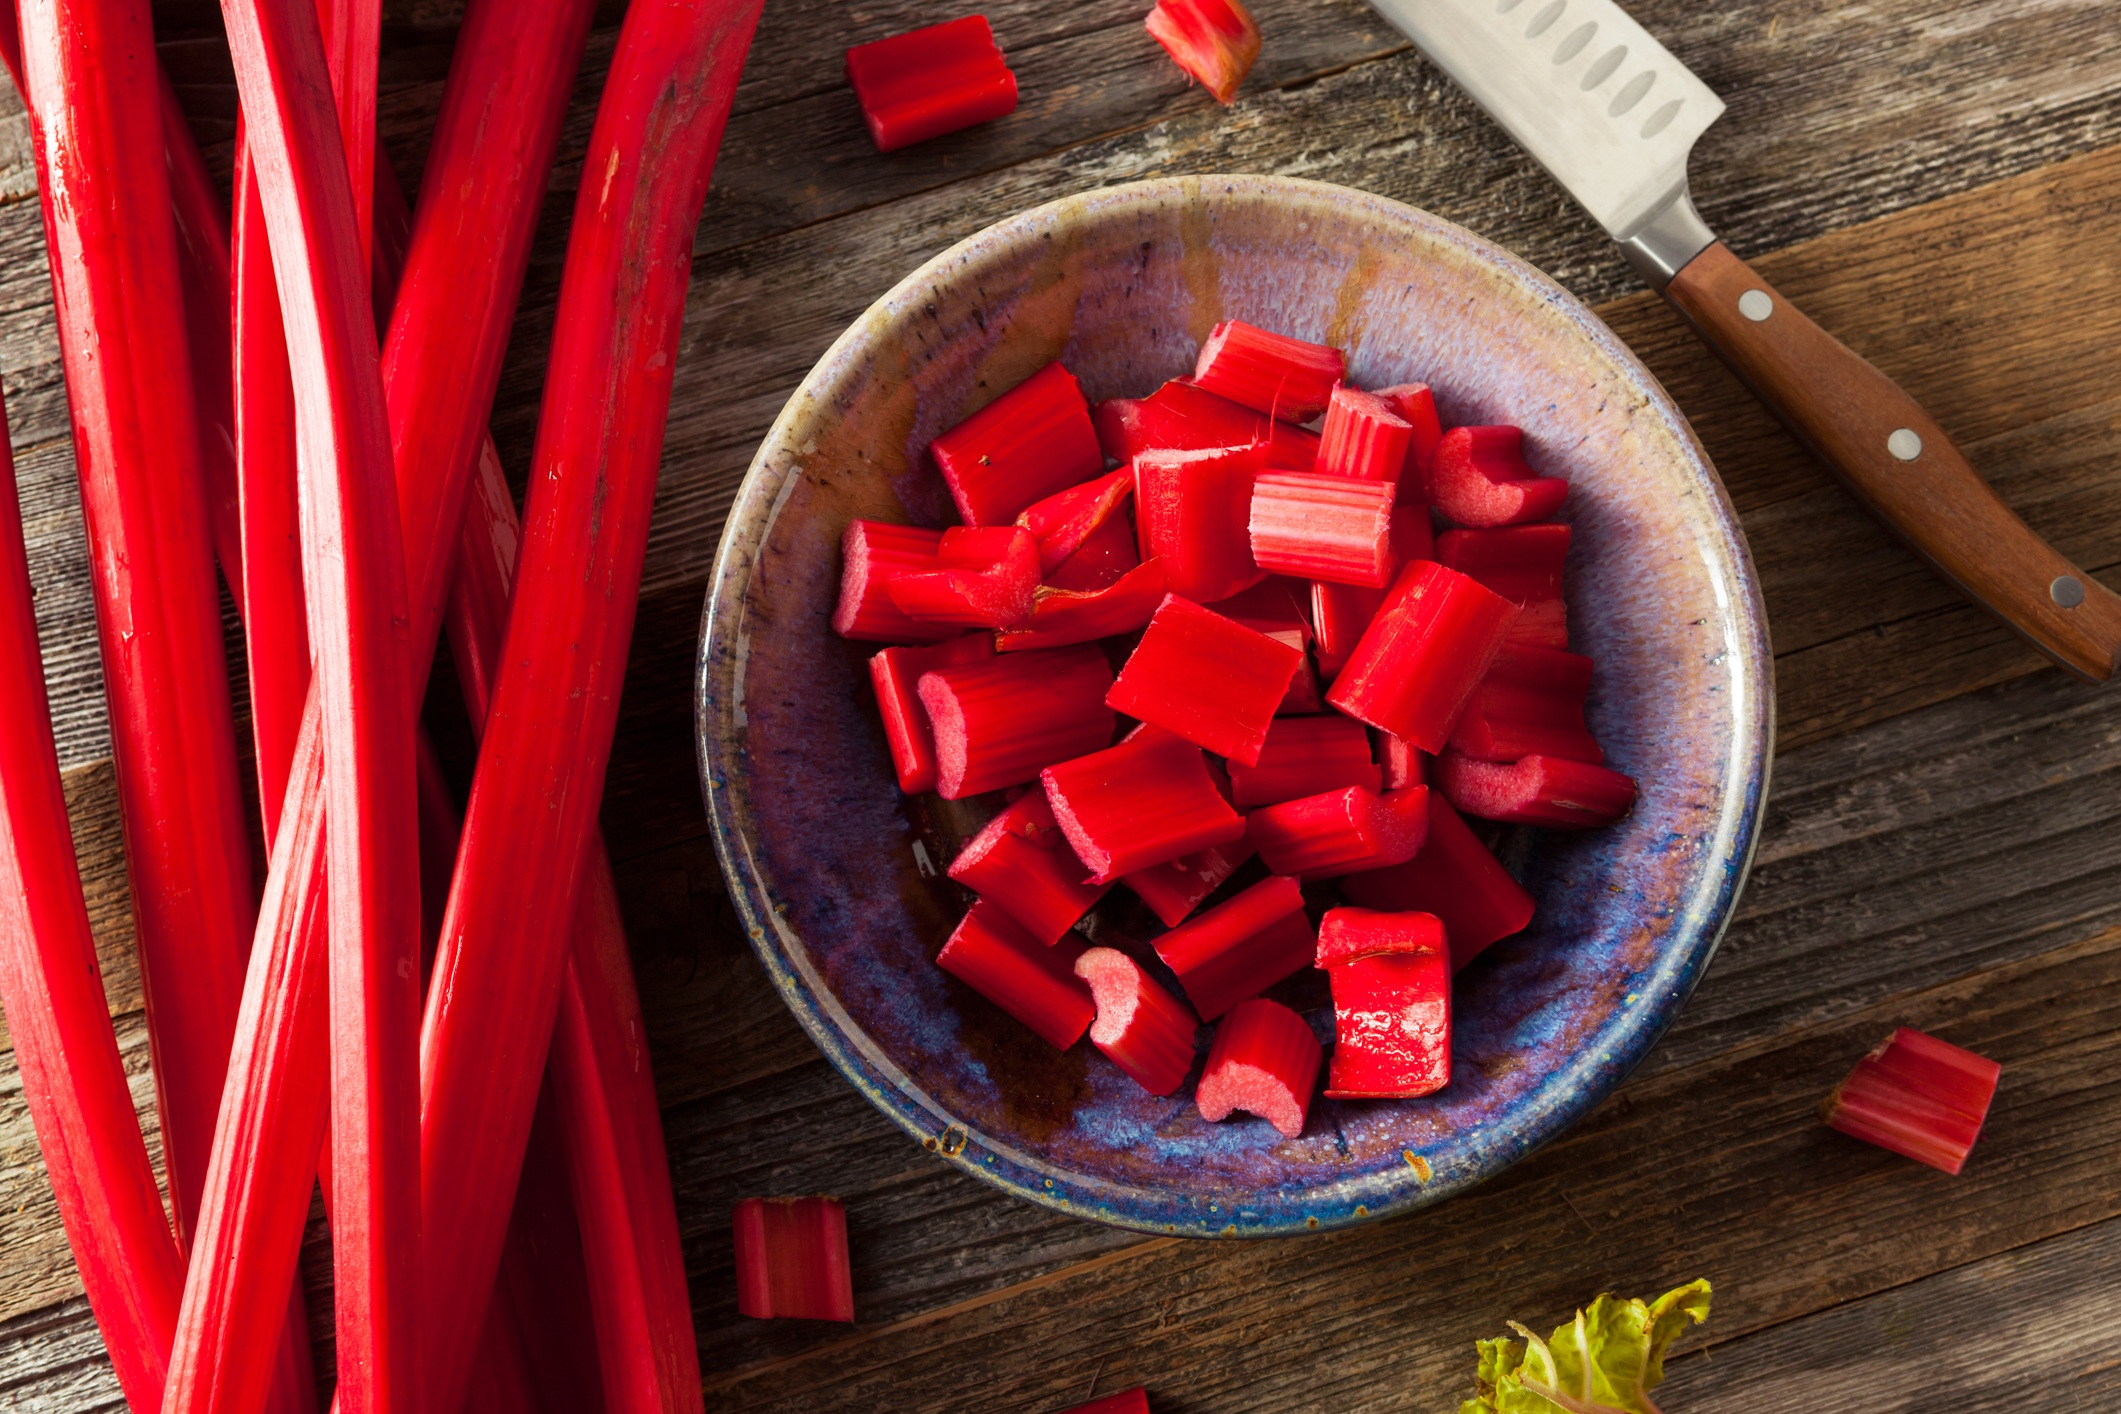 Ingredients to make rhubarb gin